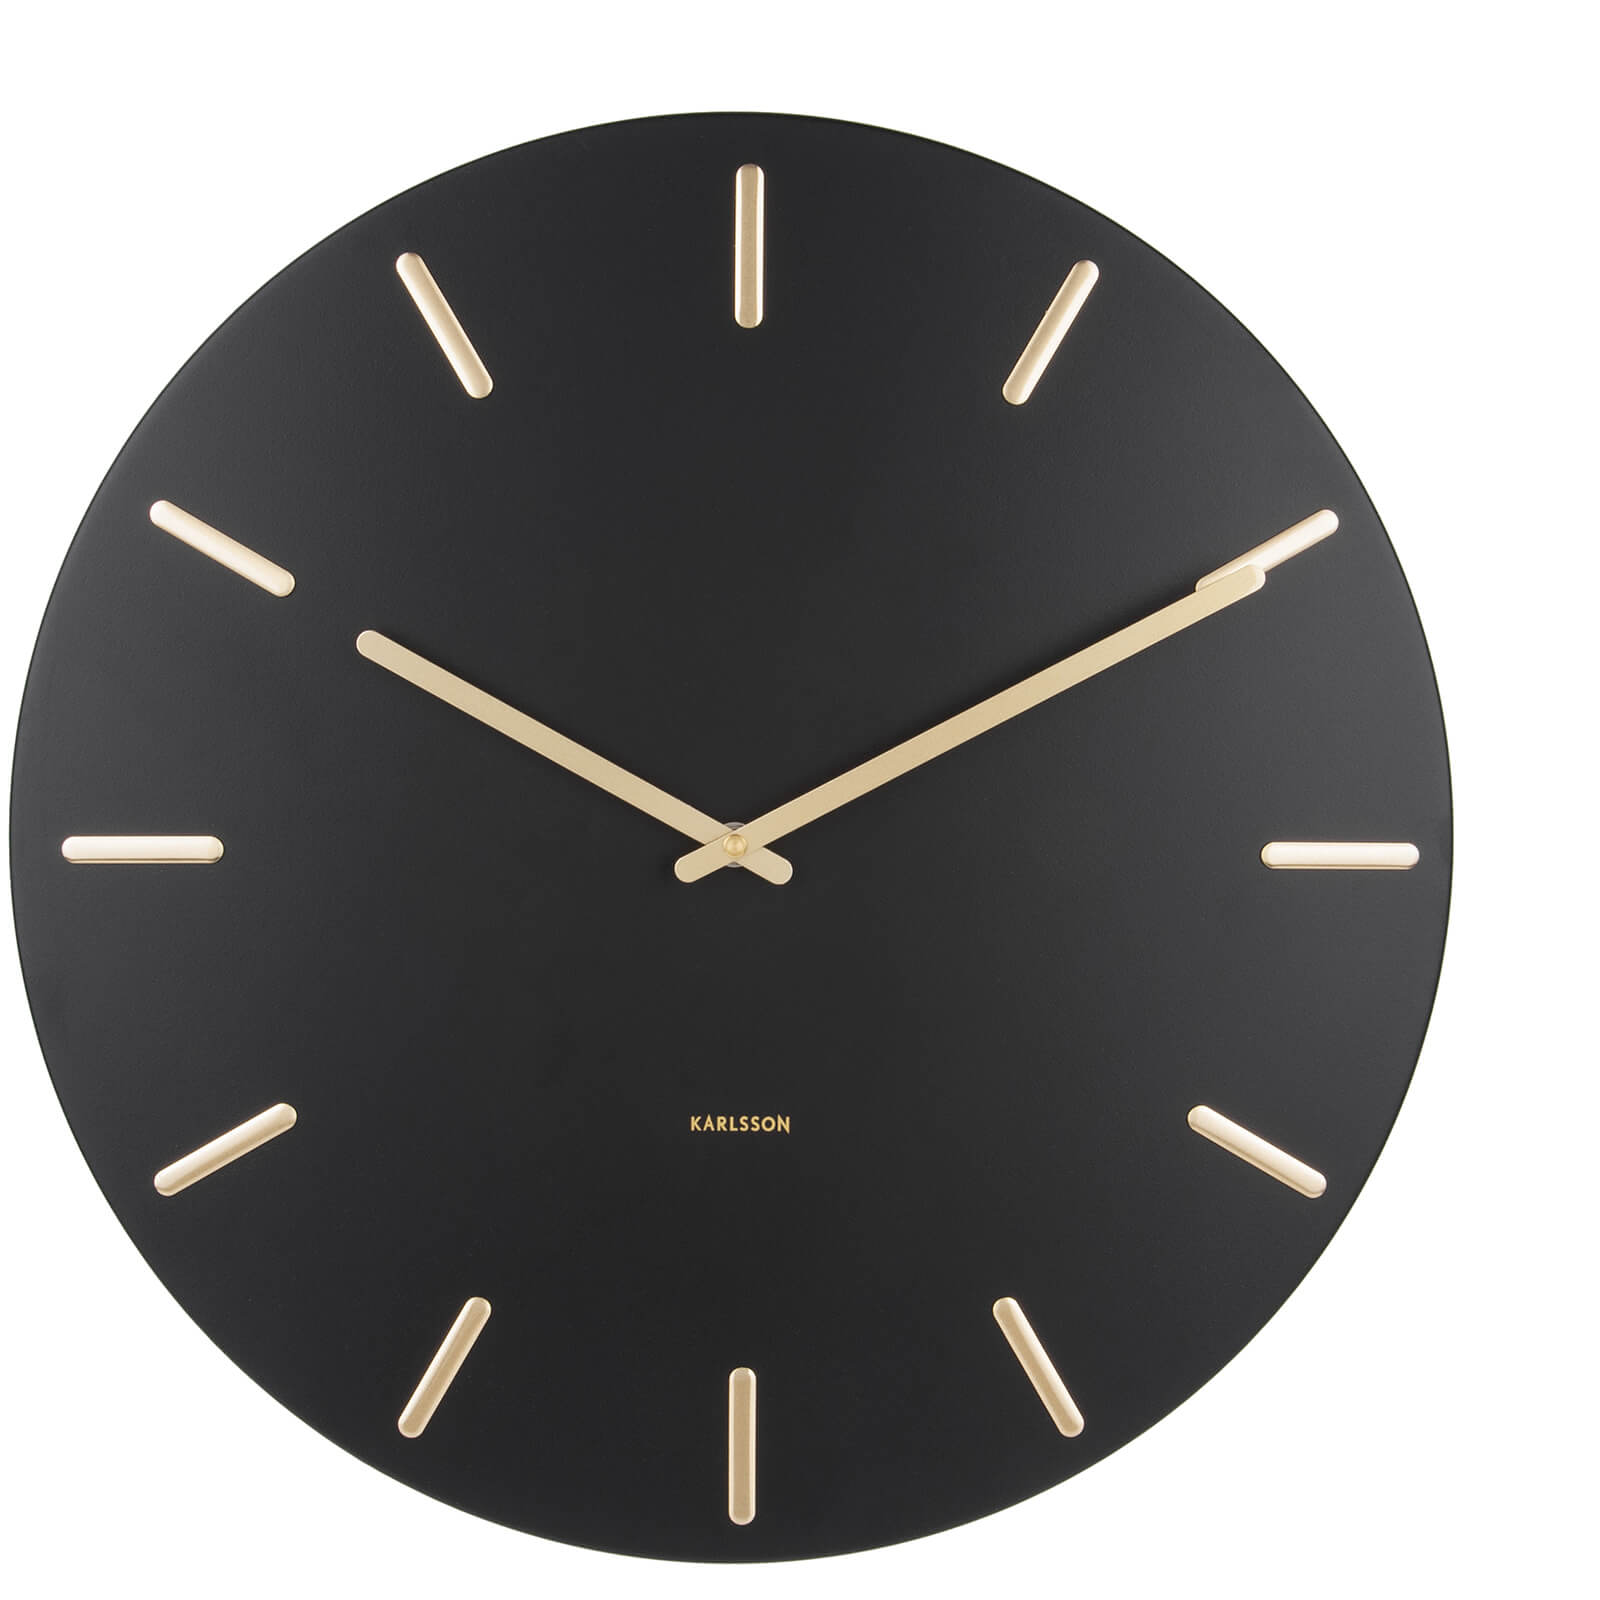 Karlsson Charm Wall Clock - Black with Gold Battons